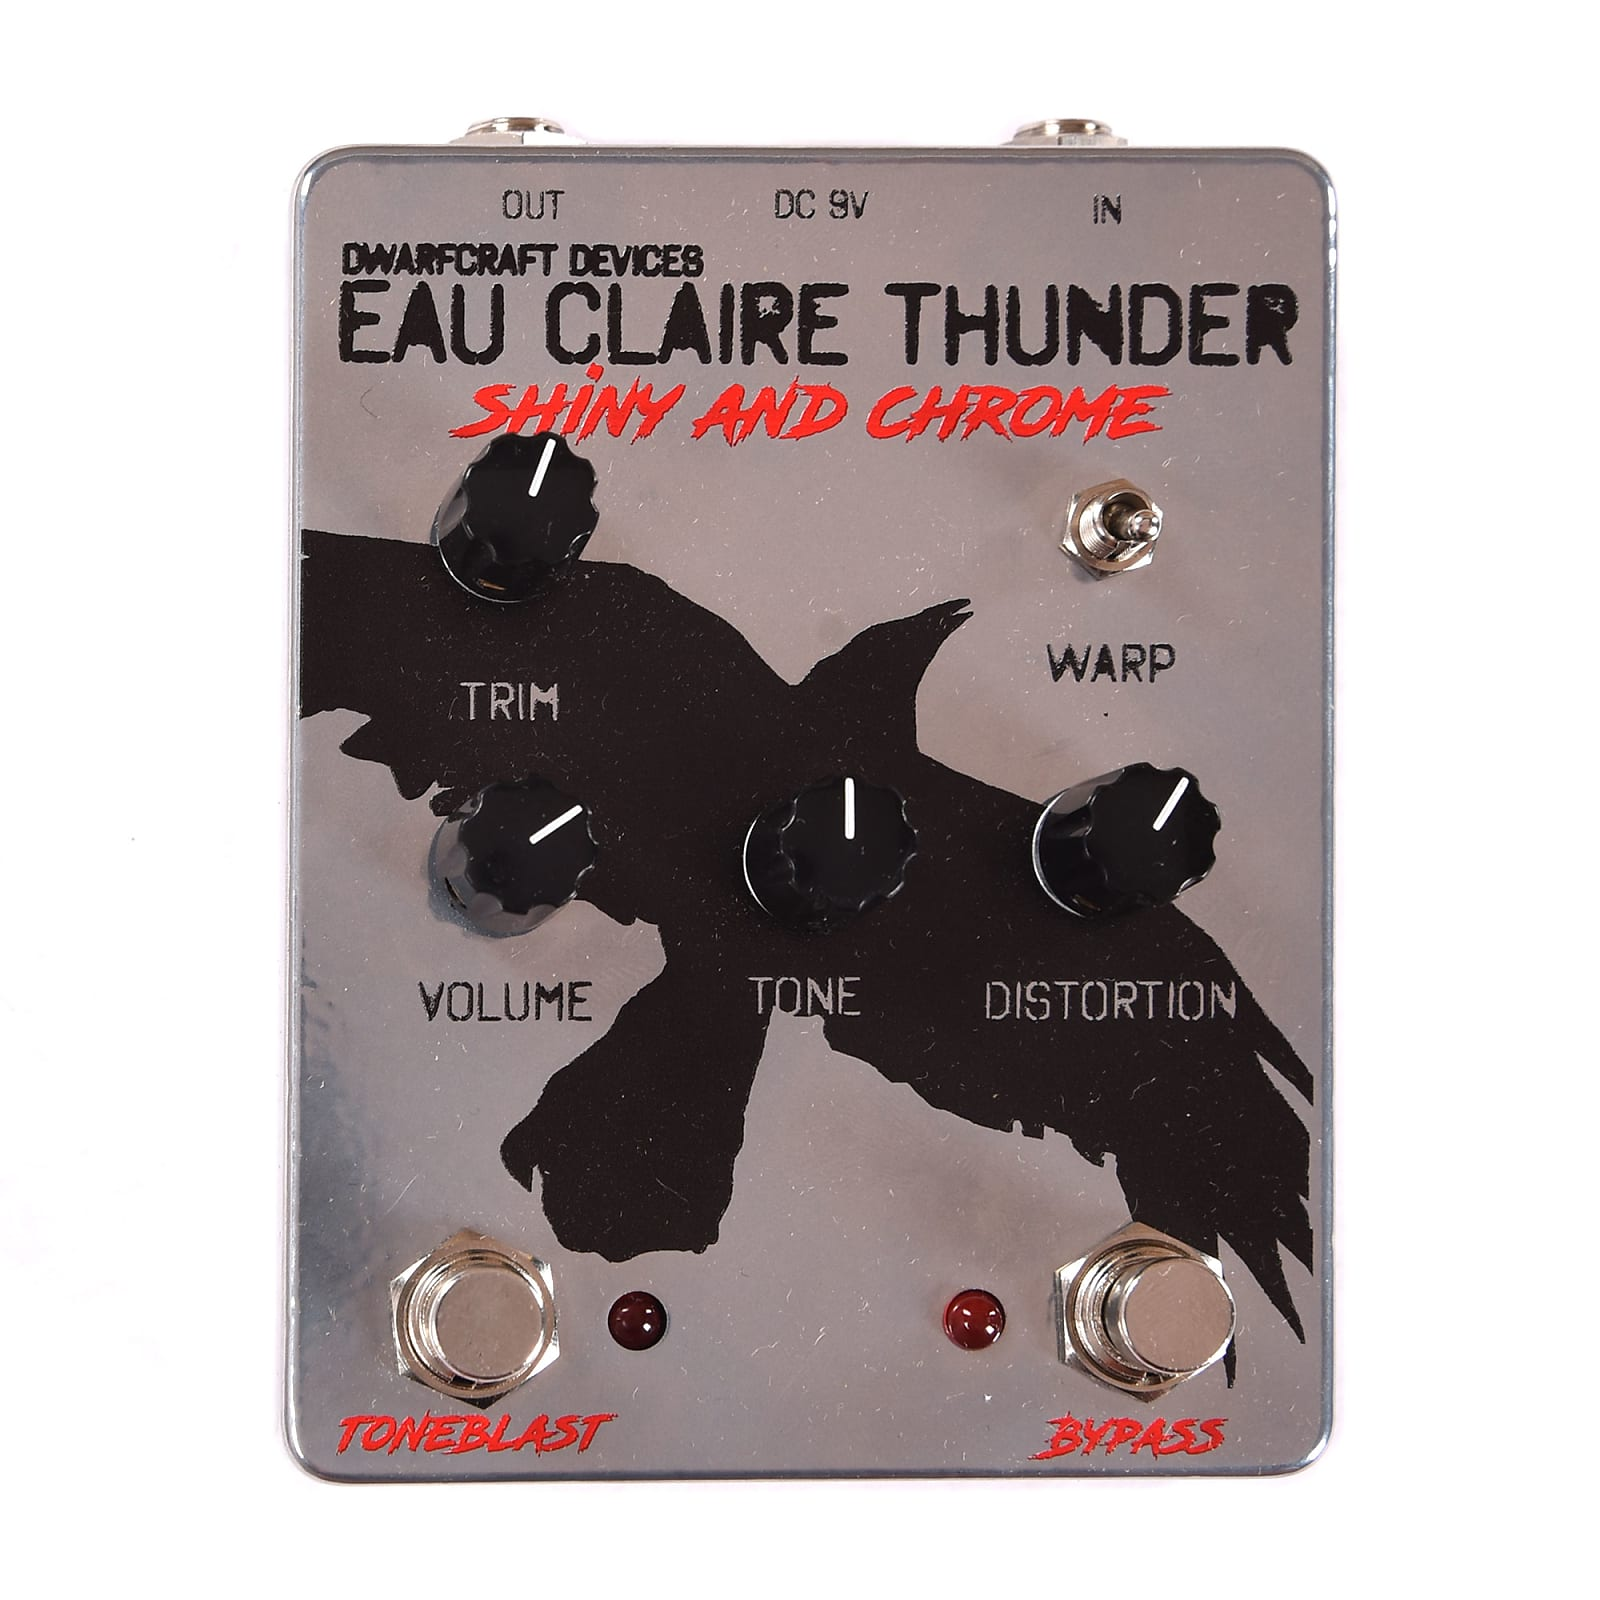 Dwarfcraft Devices Eau Claire Thunder Shiny and Chrome LTD Edition